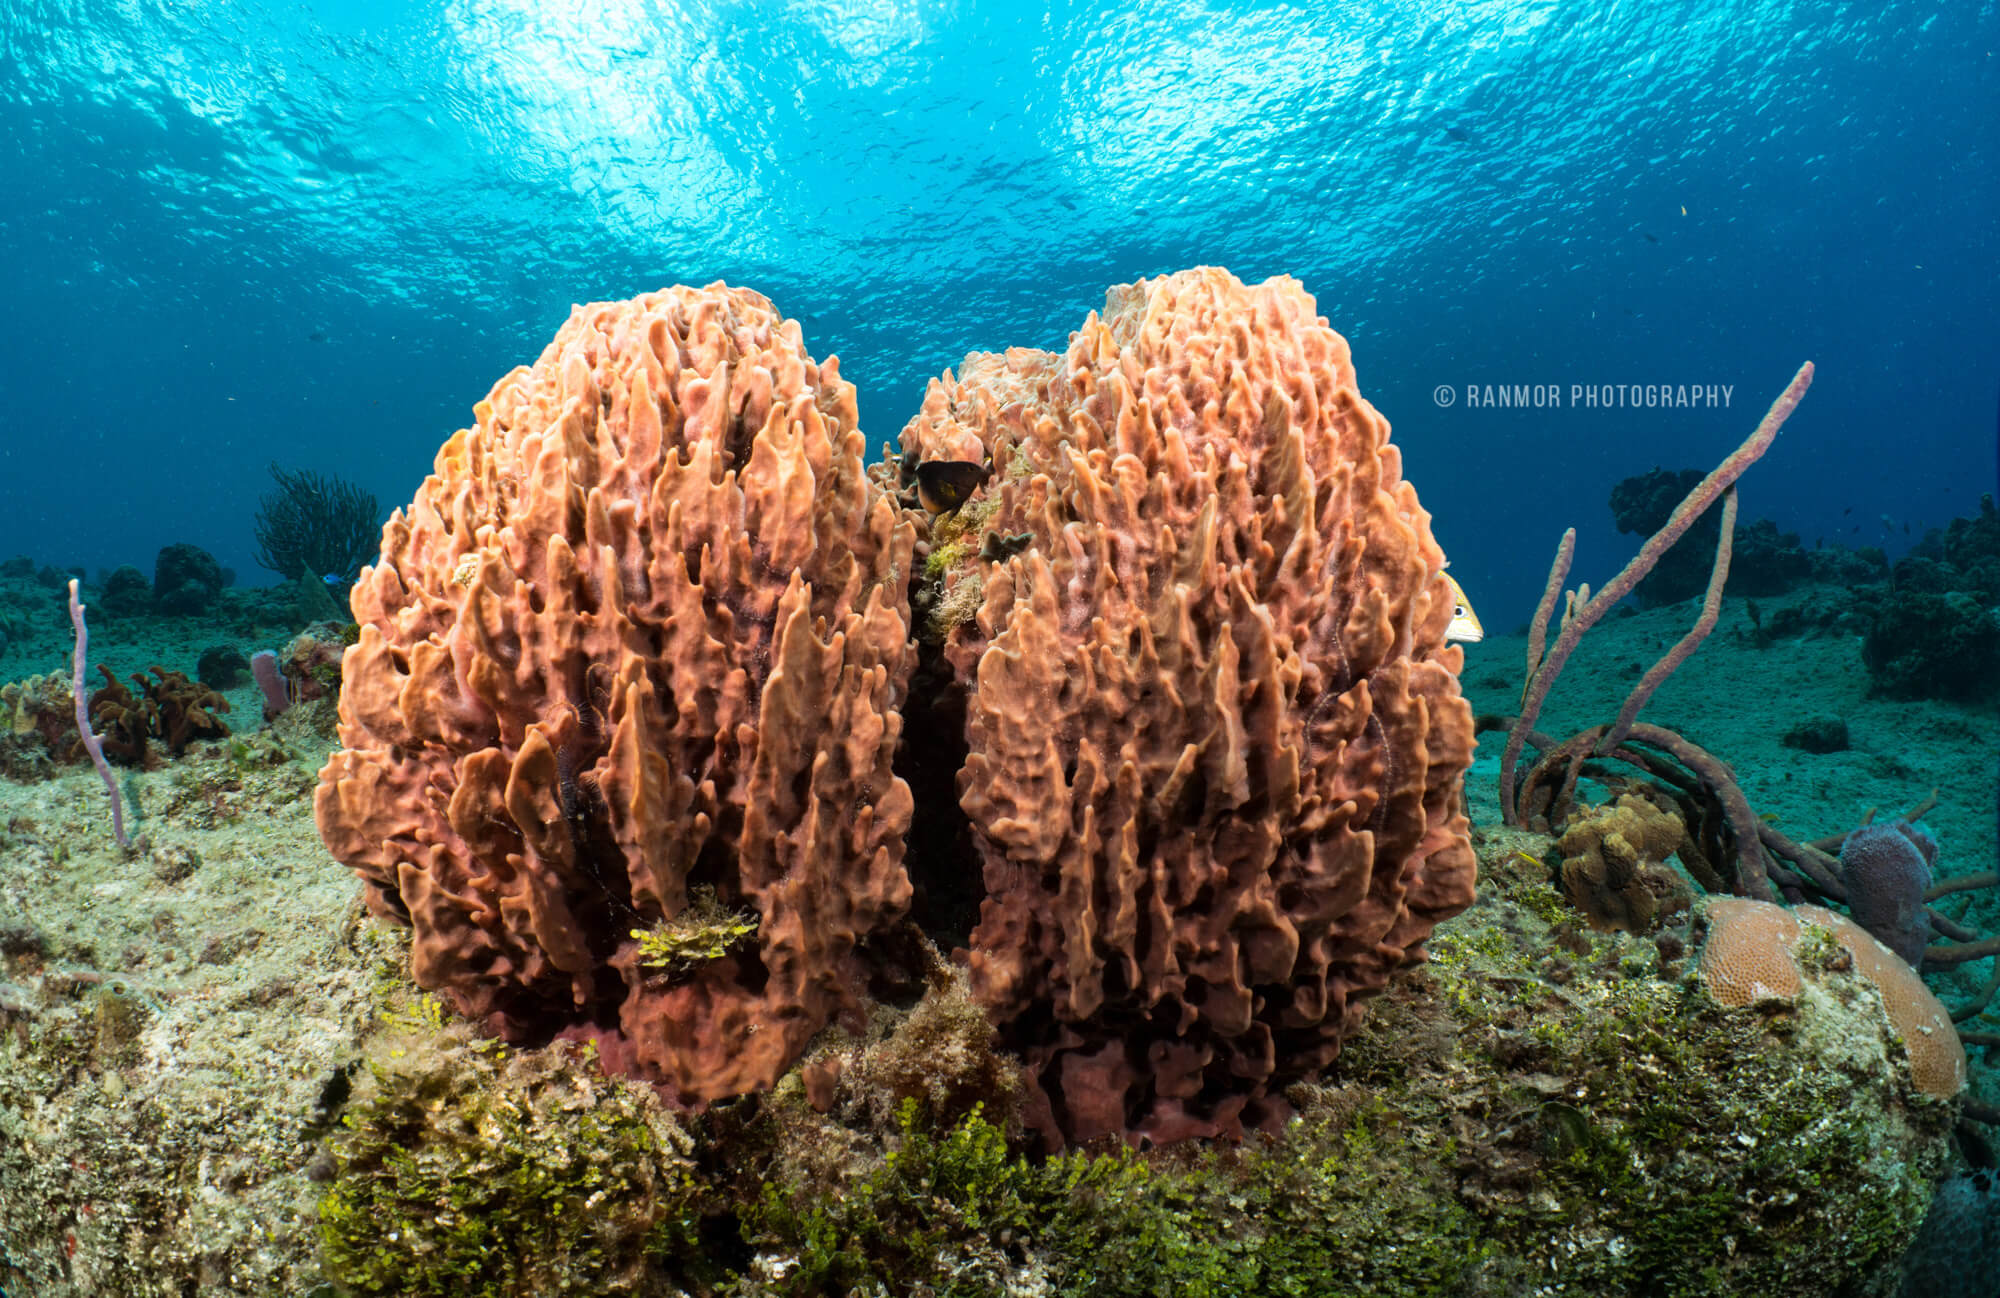 Cozumel My Cozumel Cozumel Underwater Photography School Discount